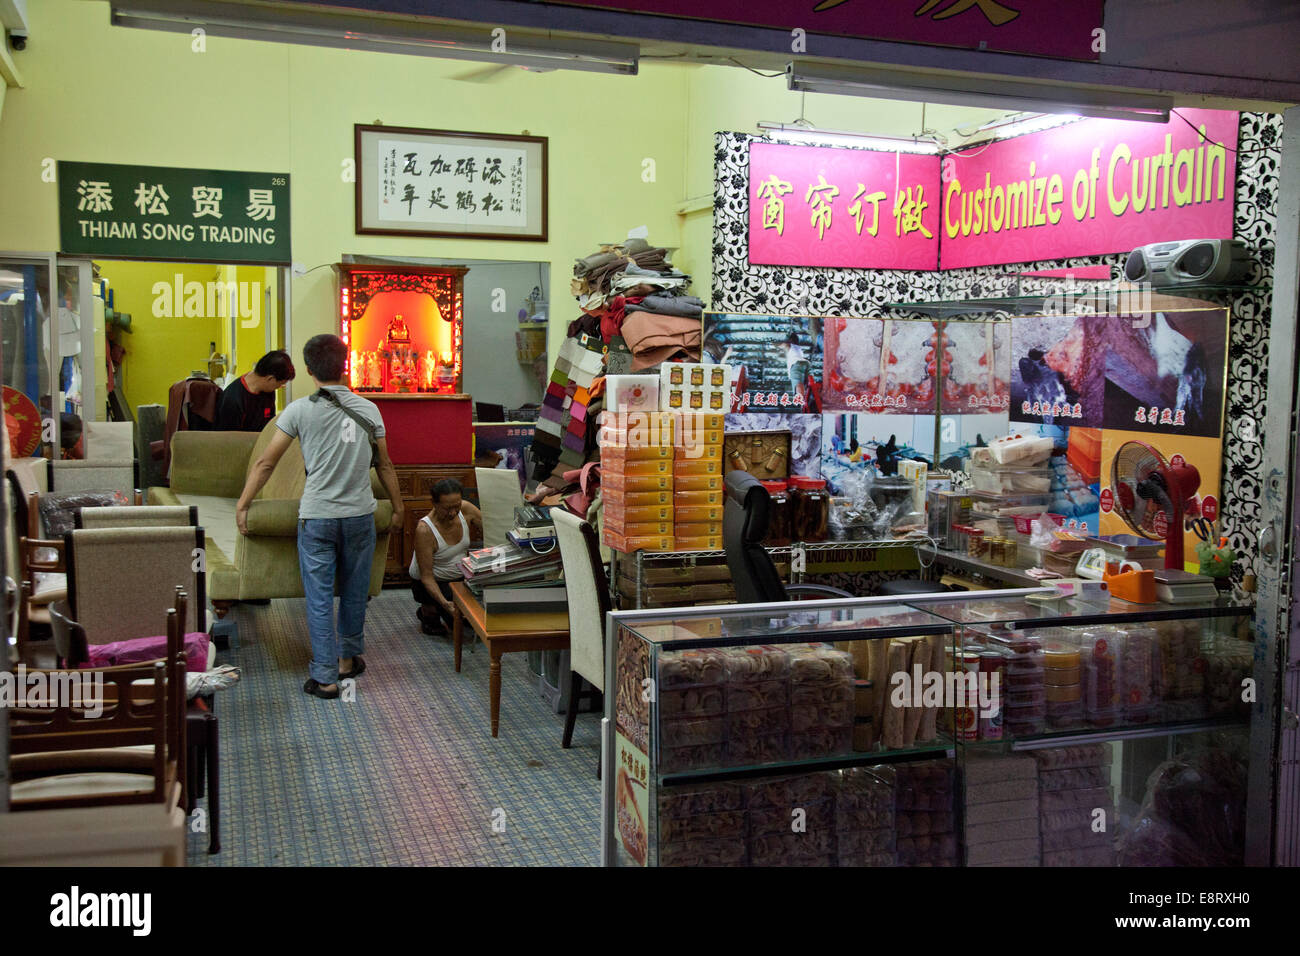 Furniture And Upholstery Shop In Chinatown, Singapore